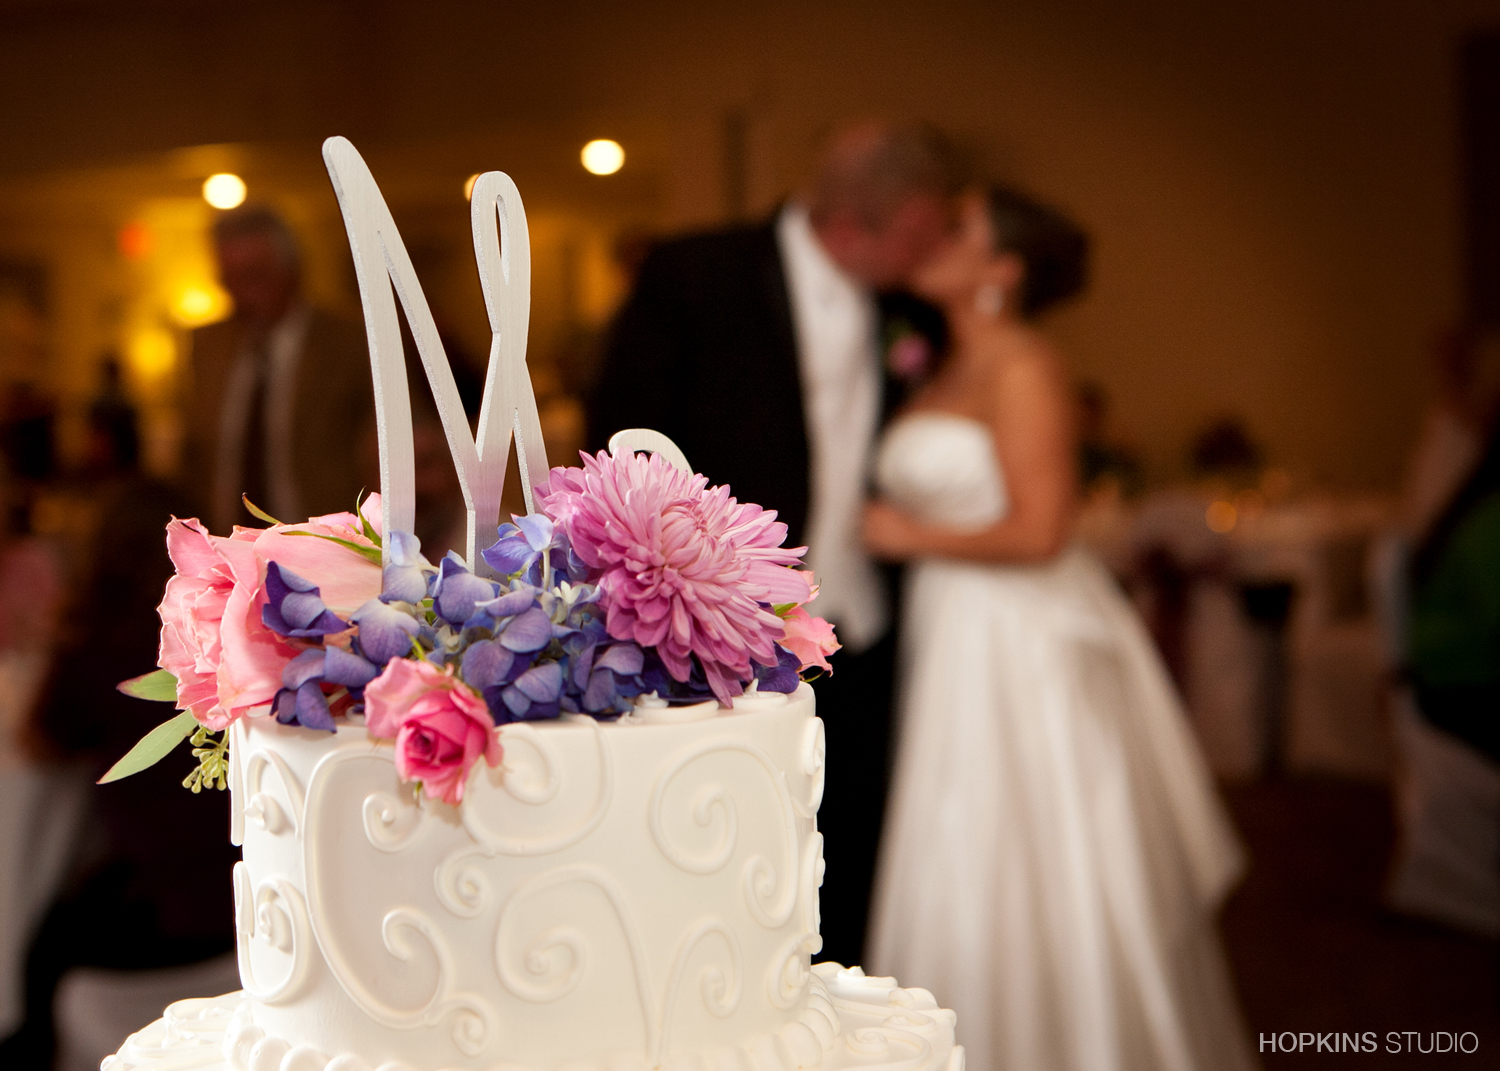 Wedding-Photography-Vineland-Center-Southwest-Michigan_25.jpg